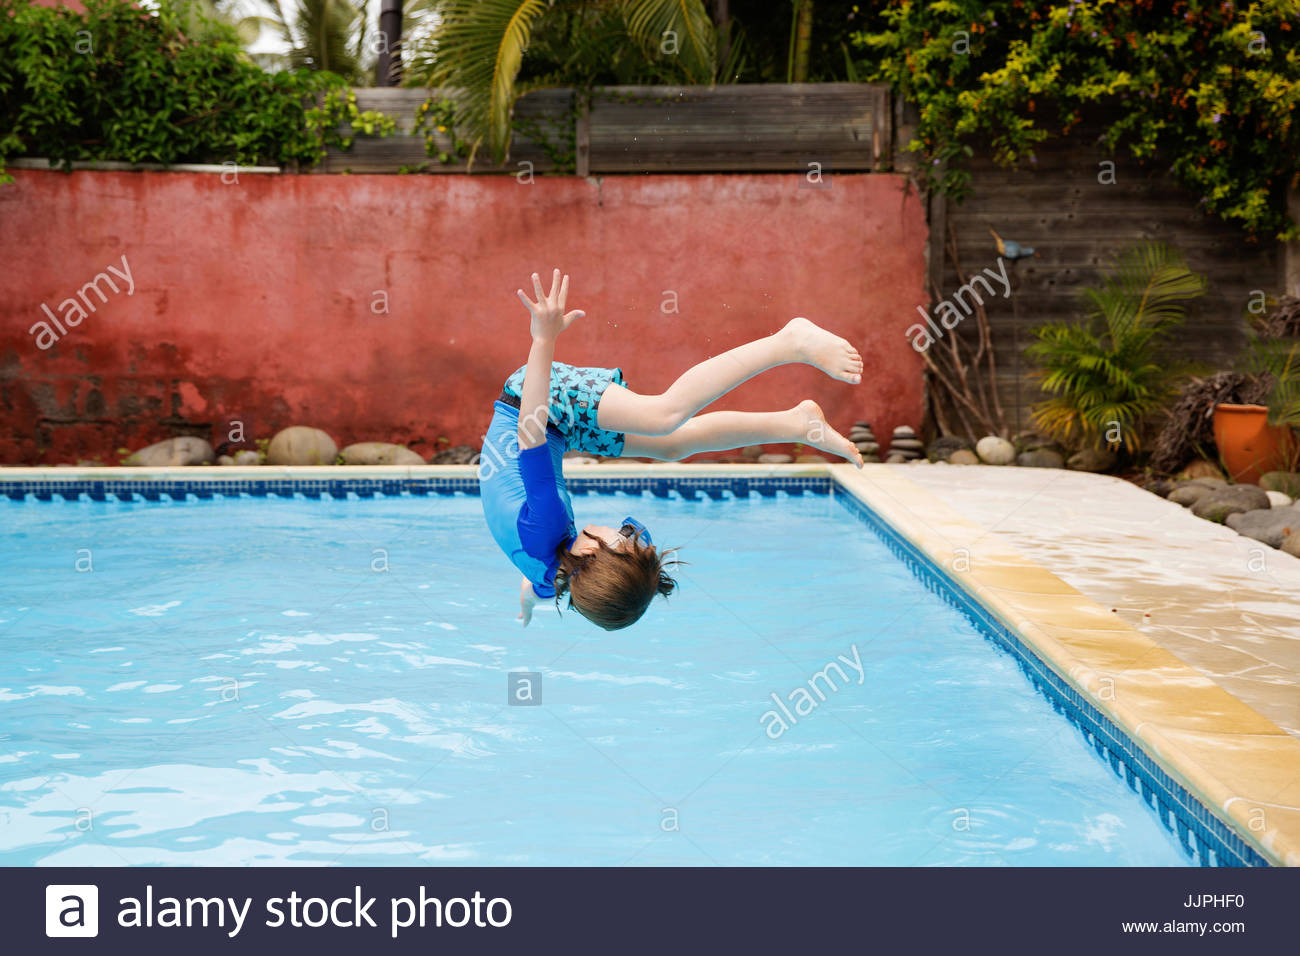 A boy in swim shorts, ten year old boy doing a back flip, a backwards somersault, into a swimming pool. - Stock Image